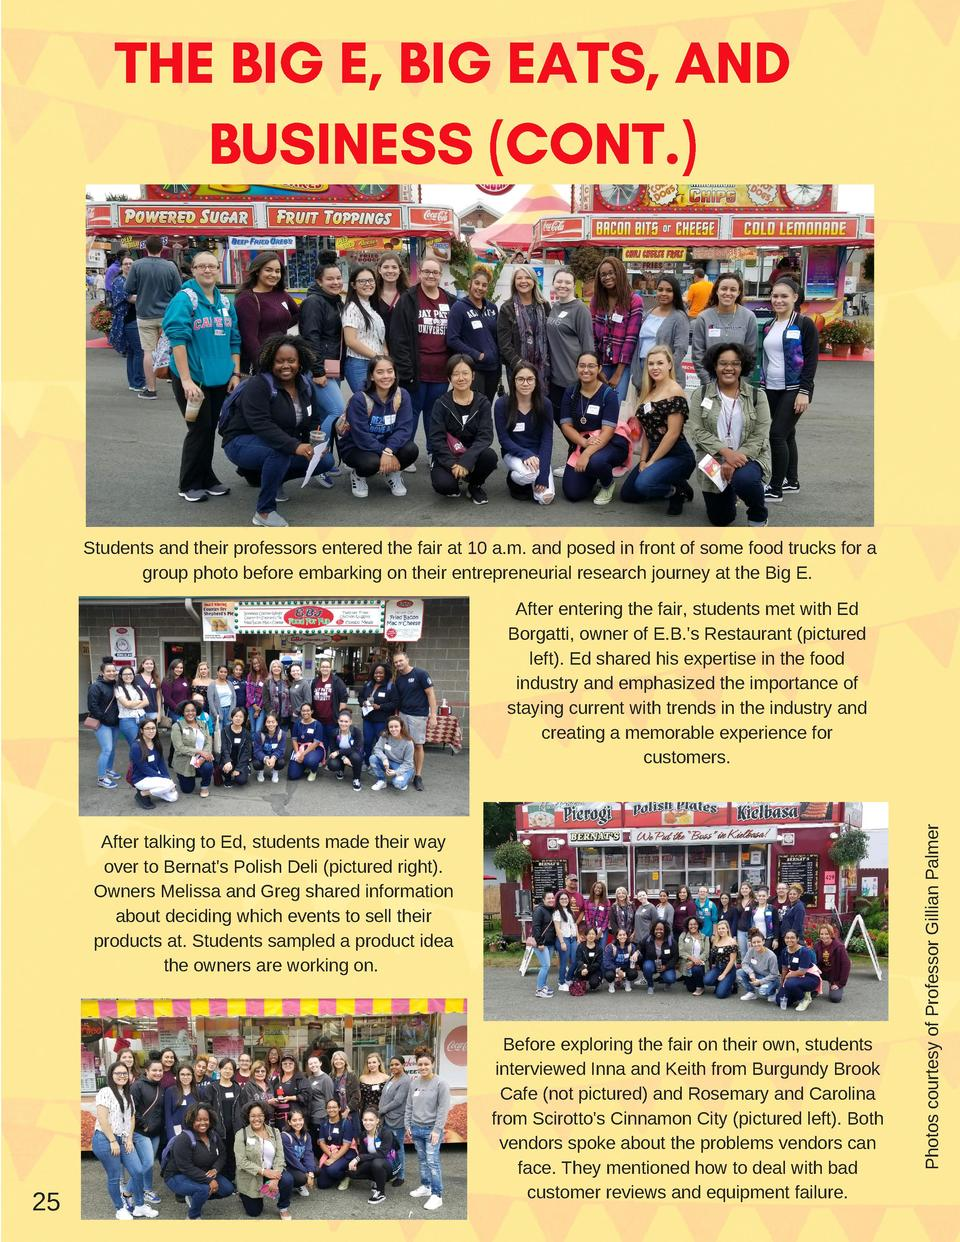 THE BIG E, BIG EATS, AND BUSINESS  CONT.   Students and their professors entered the fair at 10 a.m. and posed in front of...